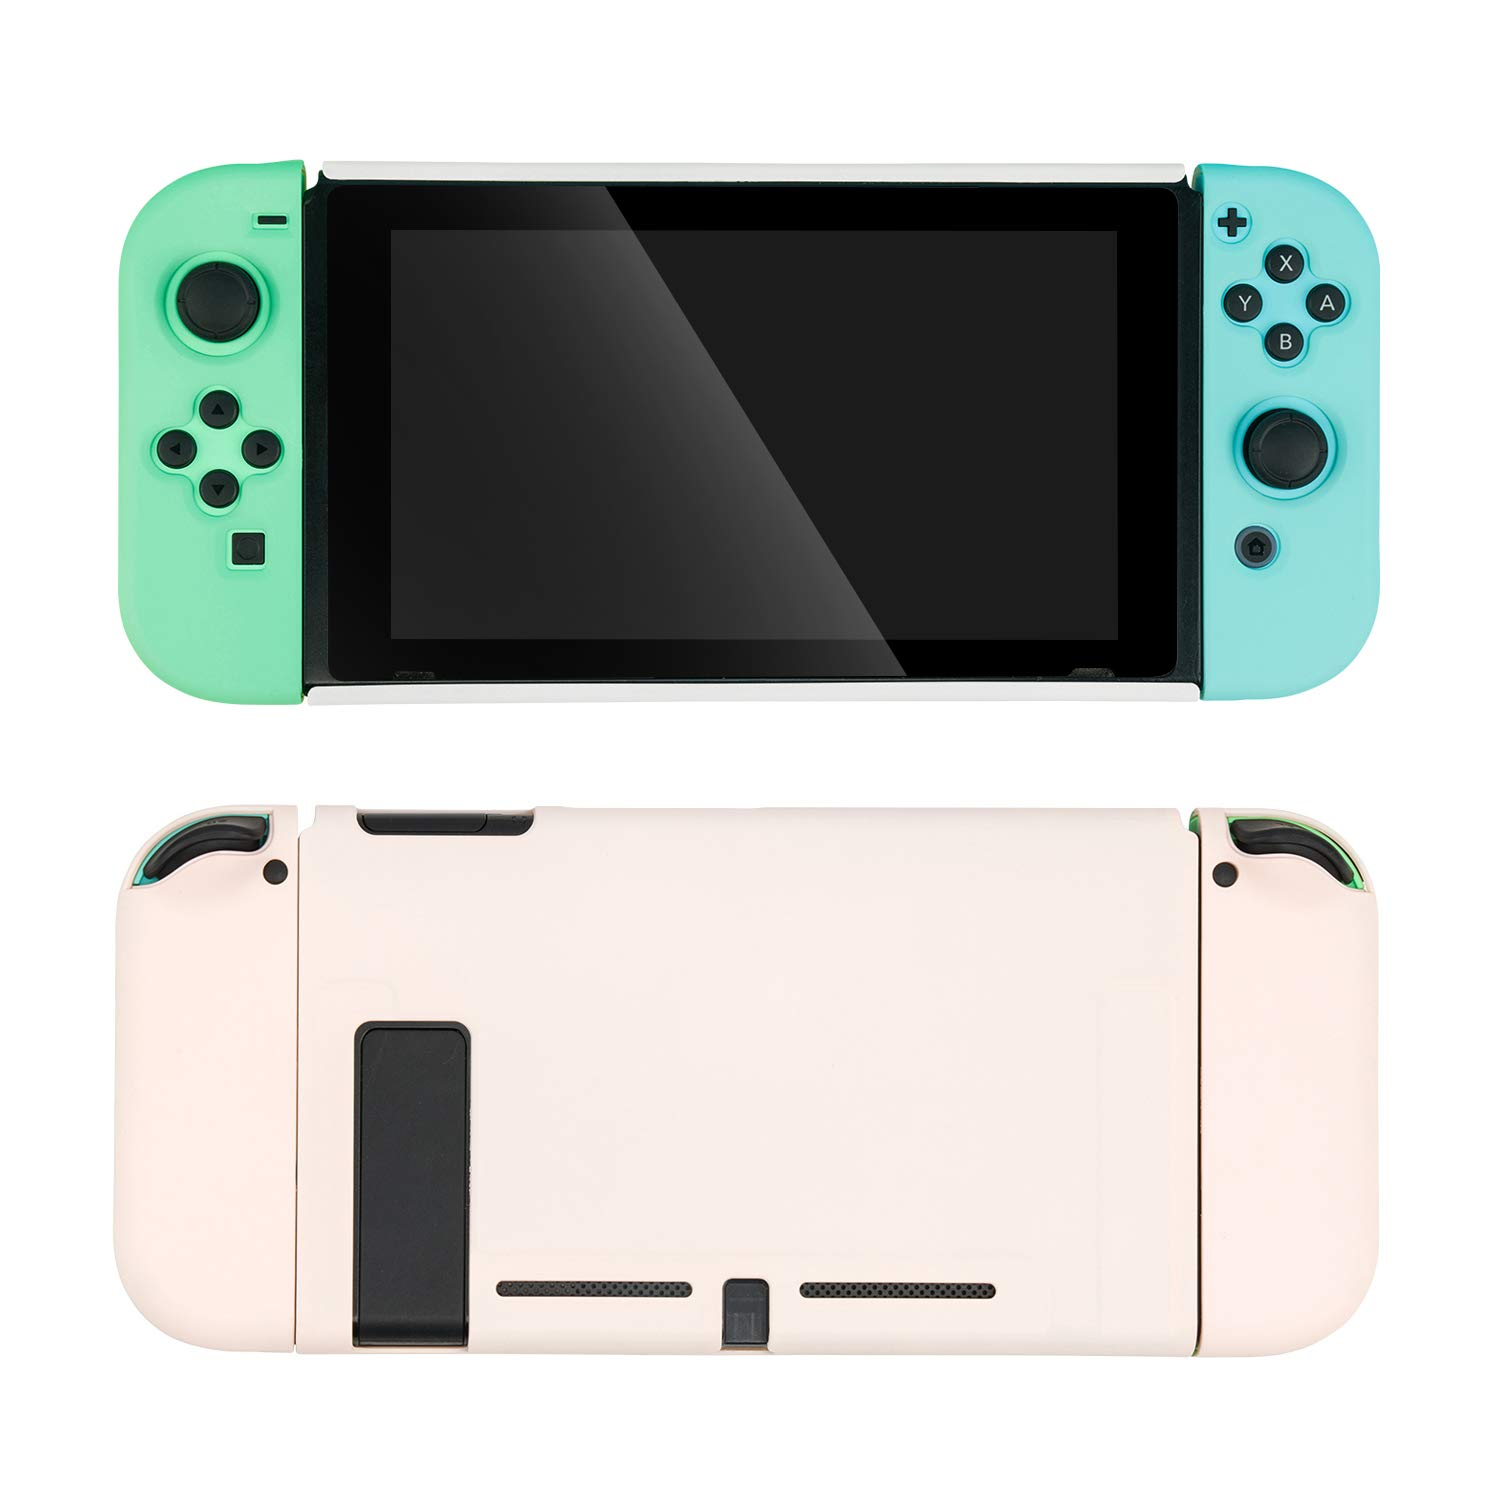 GeekShare Protective Case for Nintendo Switch and Joy Con, Animal Crossing New Horizons Accessories Slim Cover Case- Shock-Absorption and Anti-Scratch